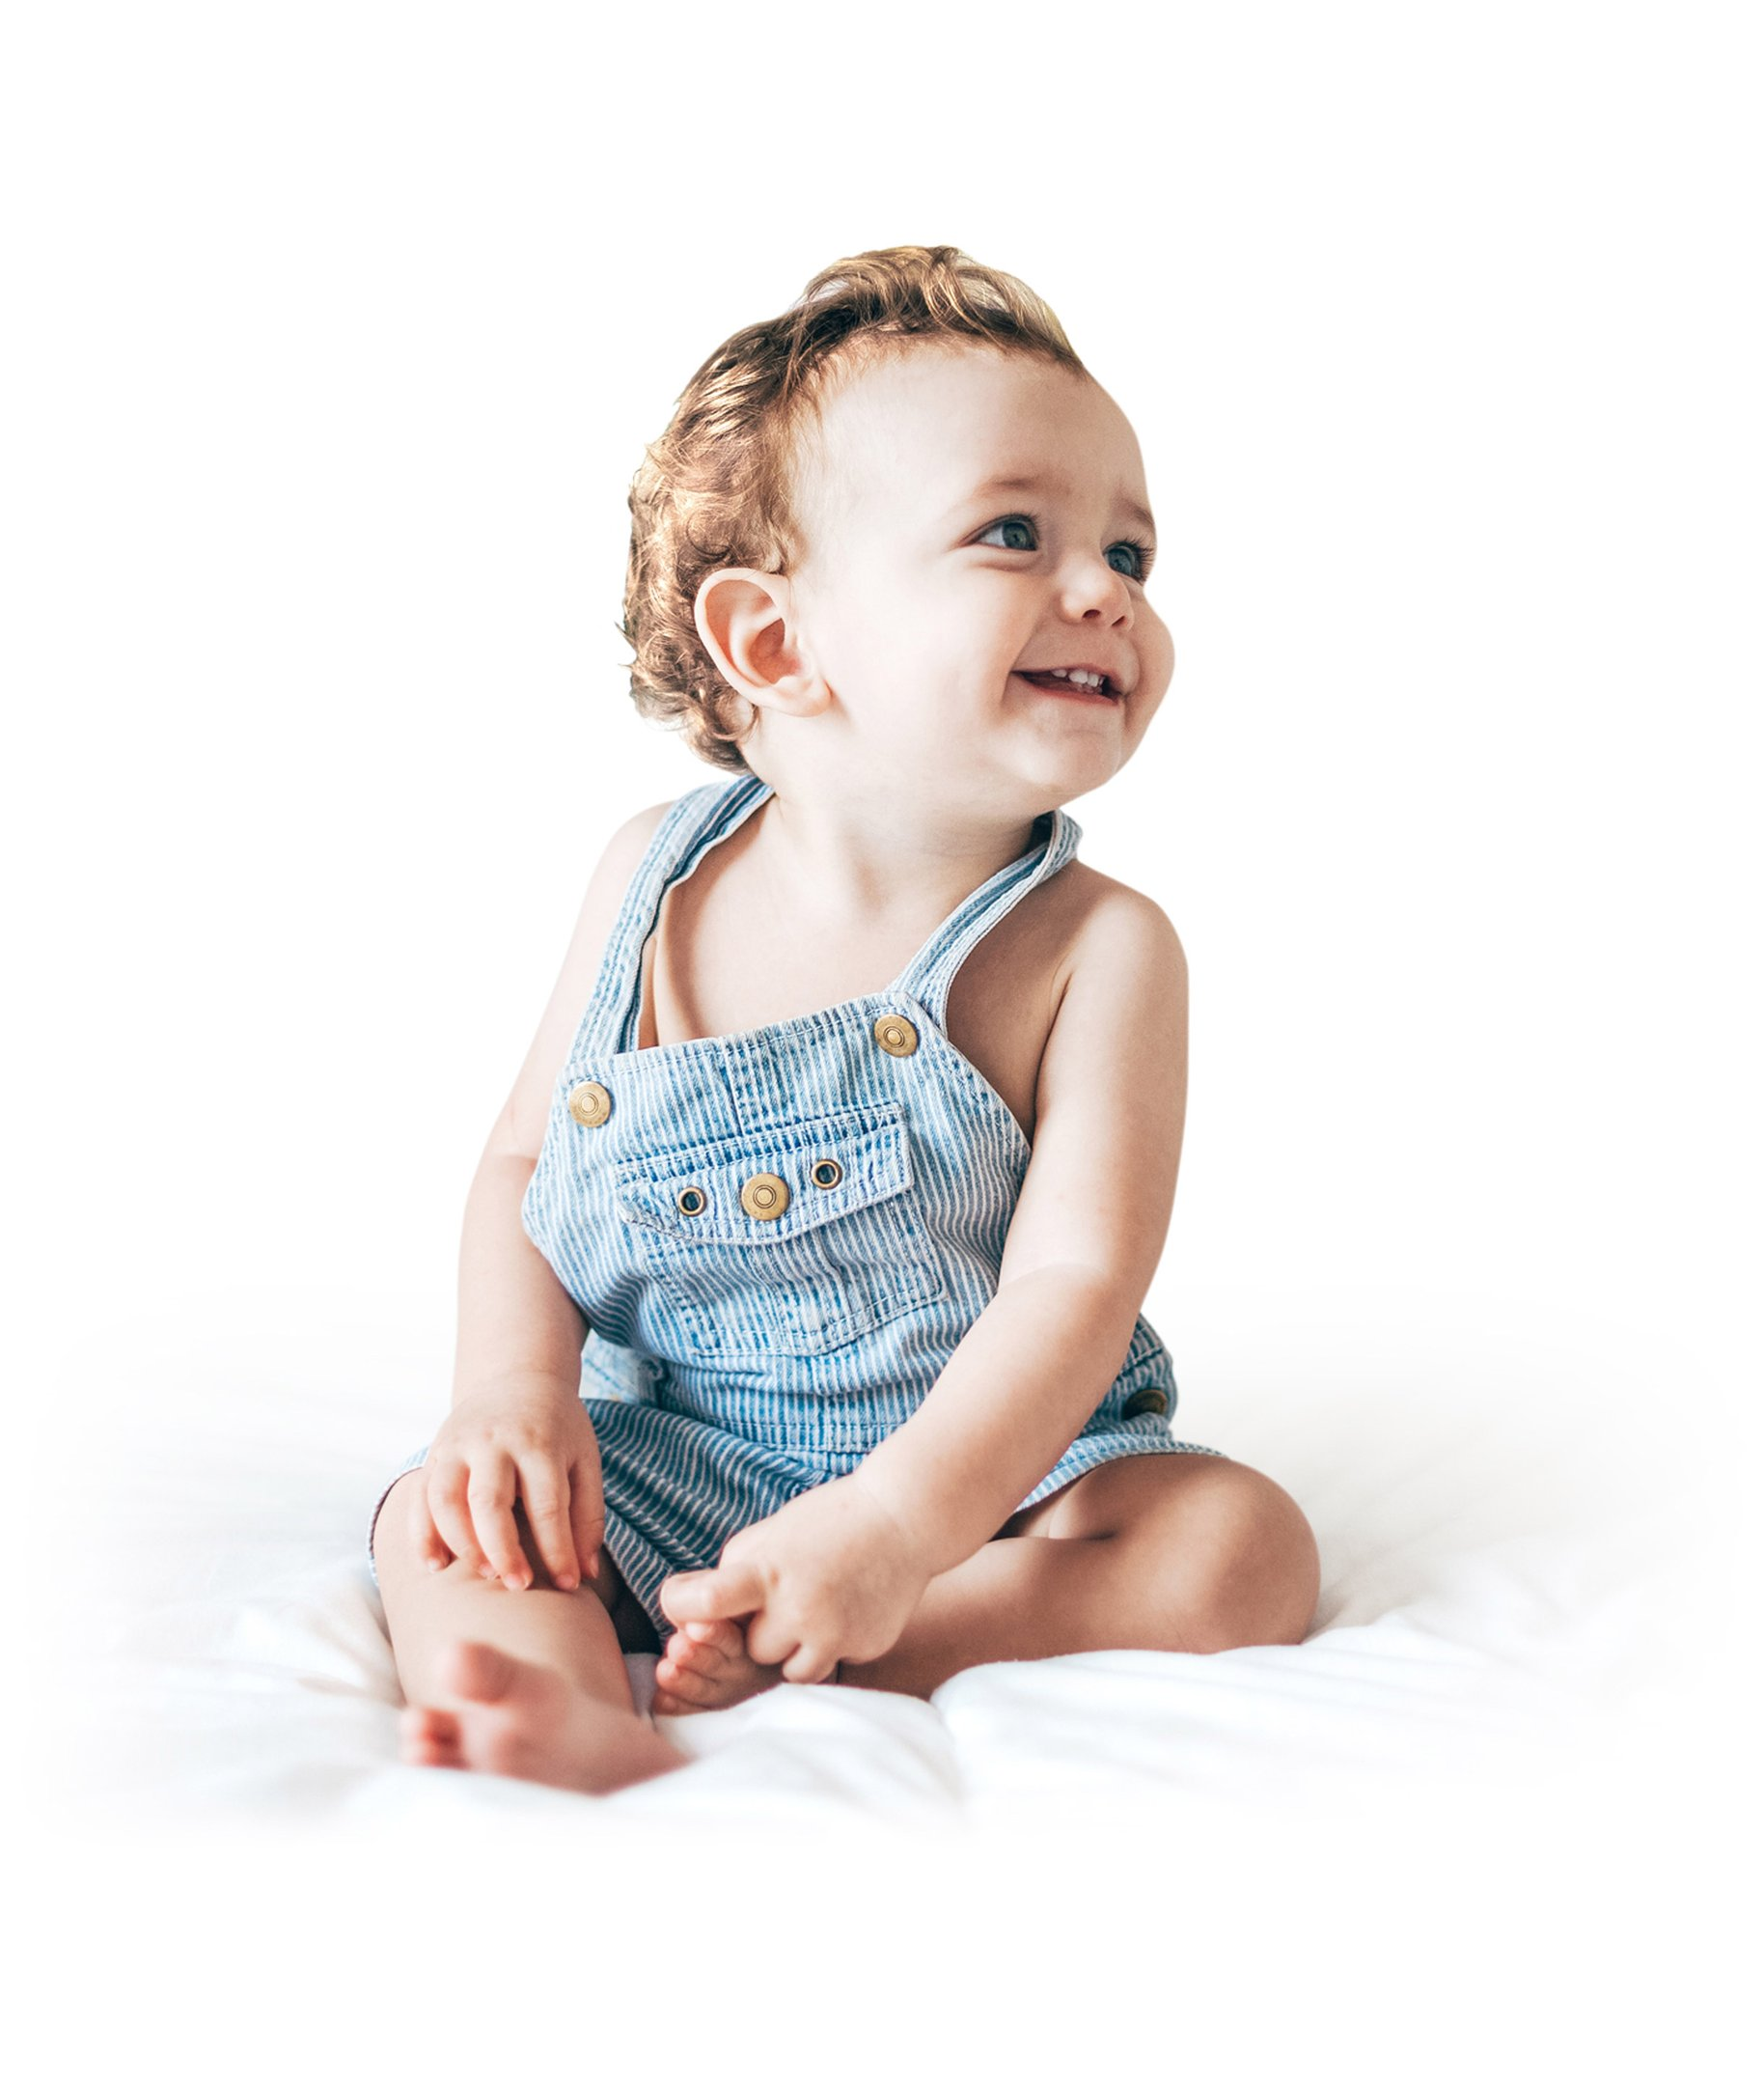 Capricare cute baby photography